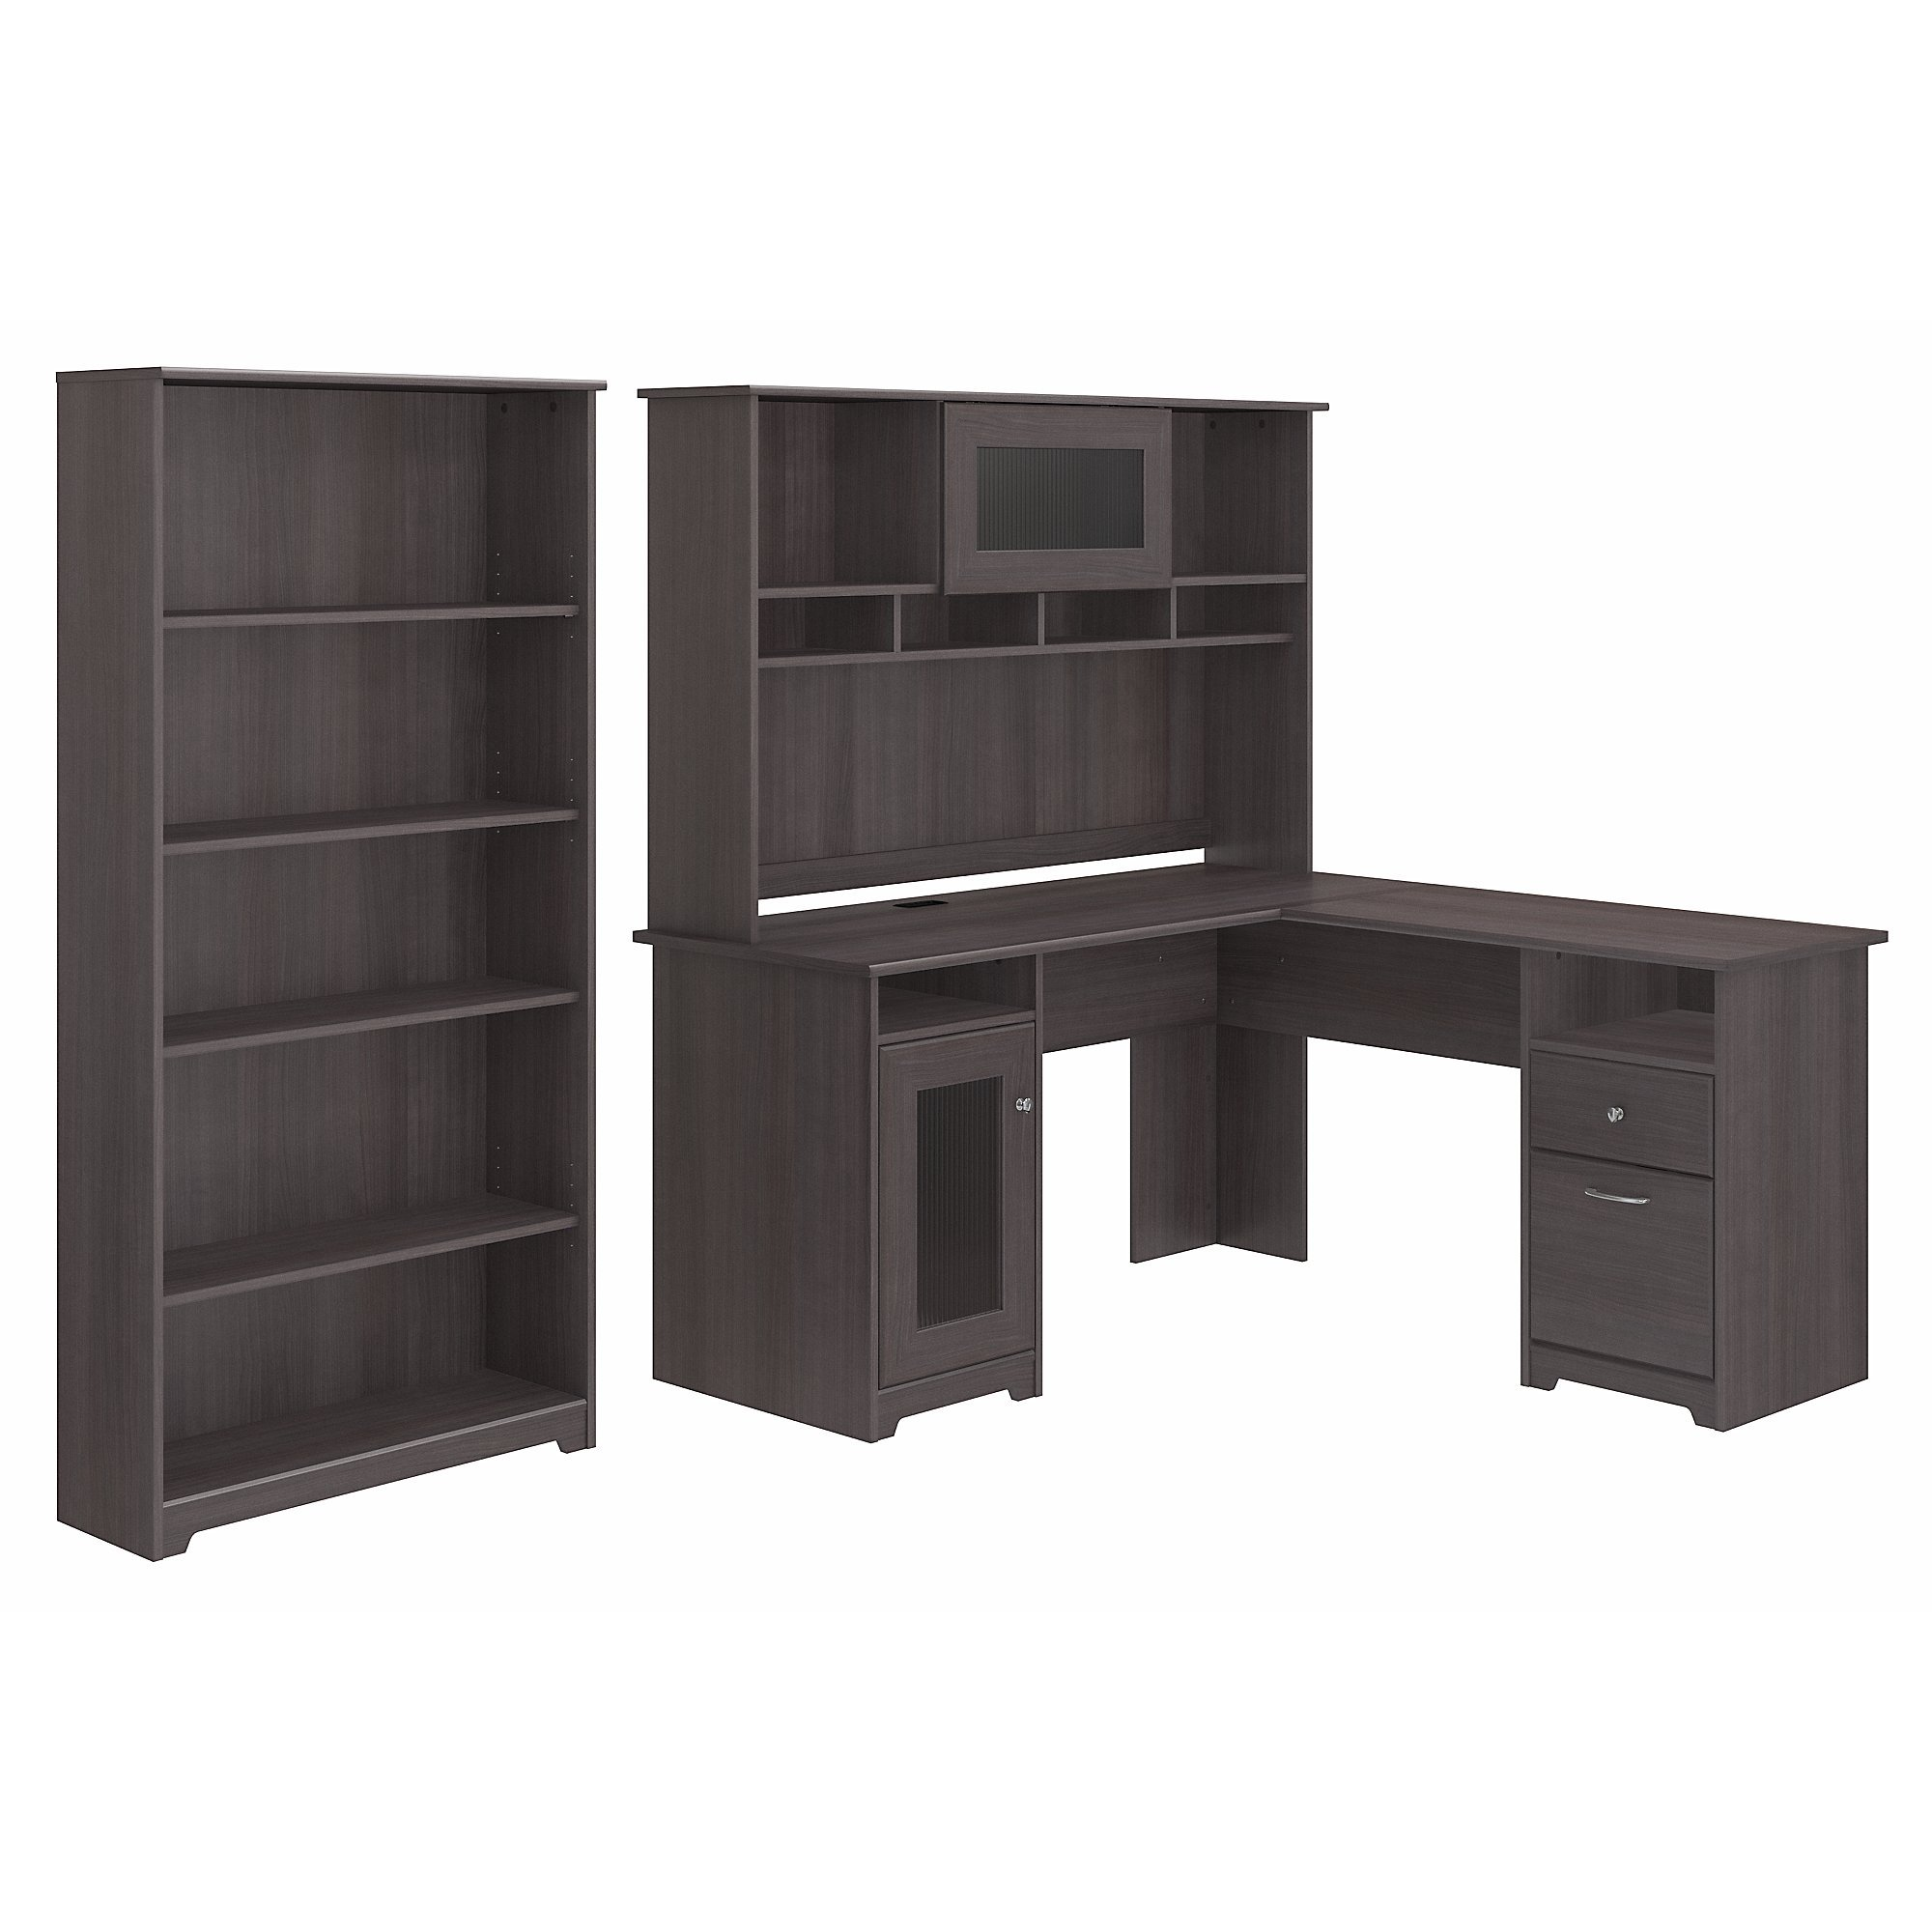 Cabot L Shaped Desk with Hutch and 5 Shelf Bookcase